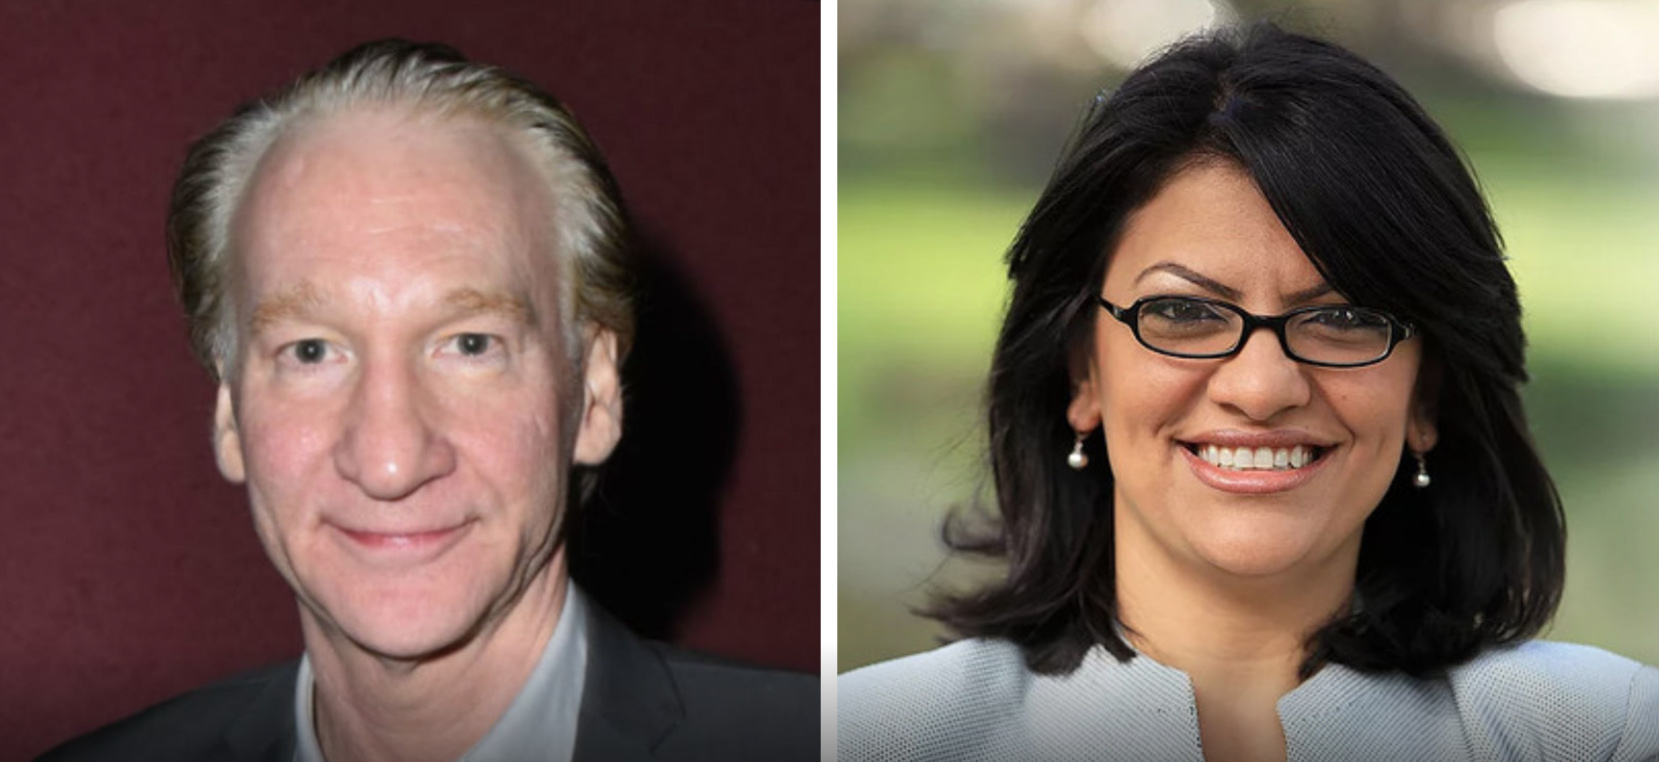 Photo of Liberal Catfight! Bill Maher calls BS on BDS Tlaib punches back.